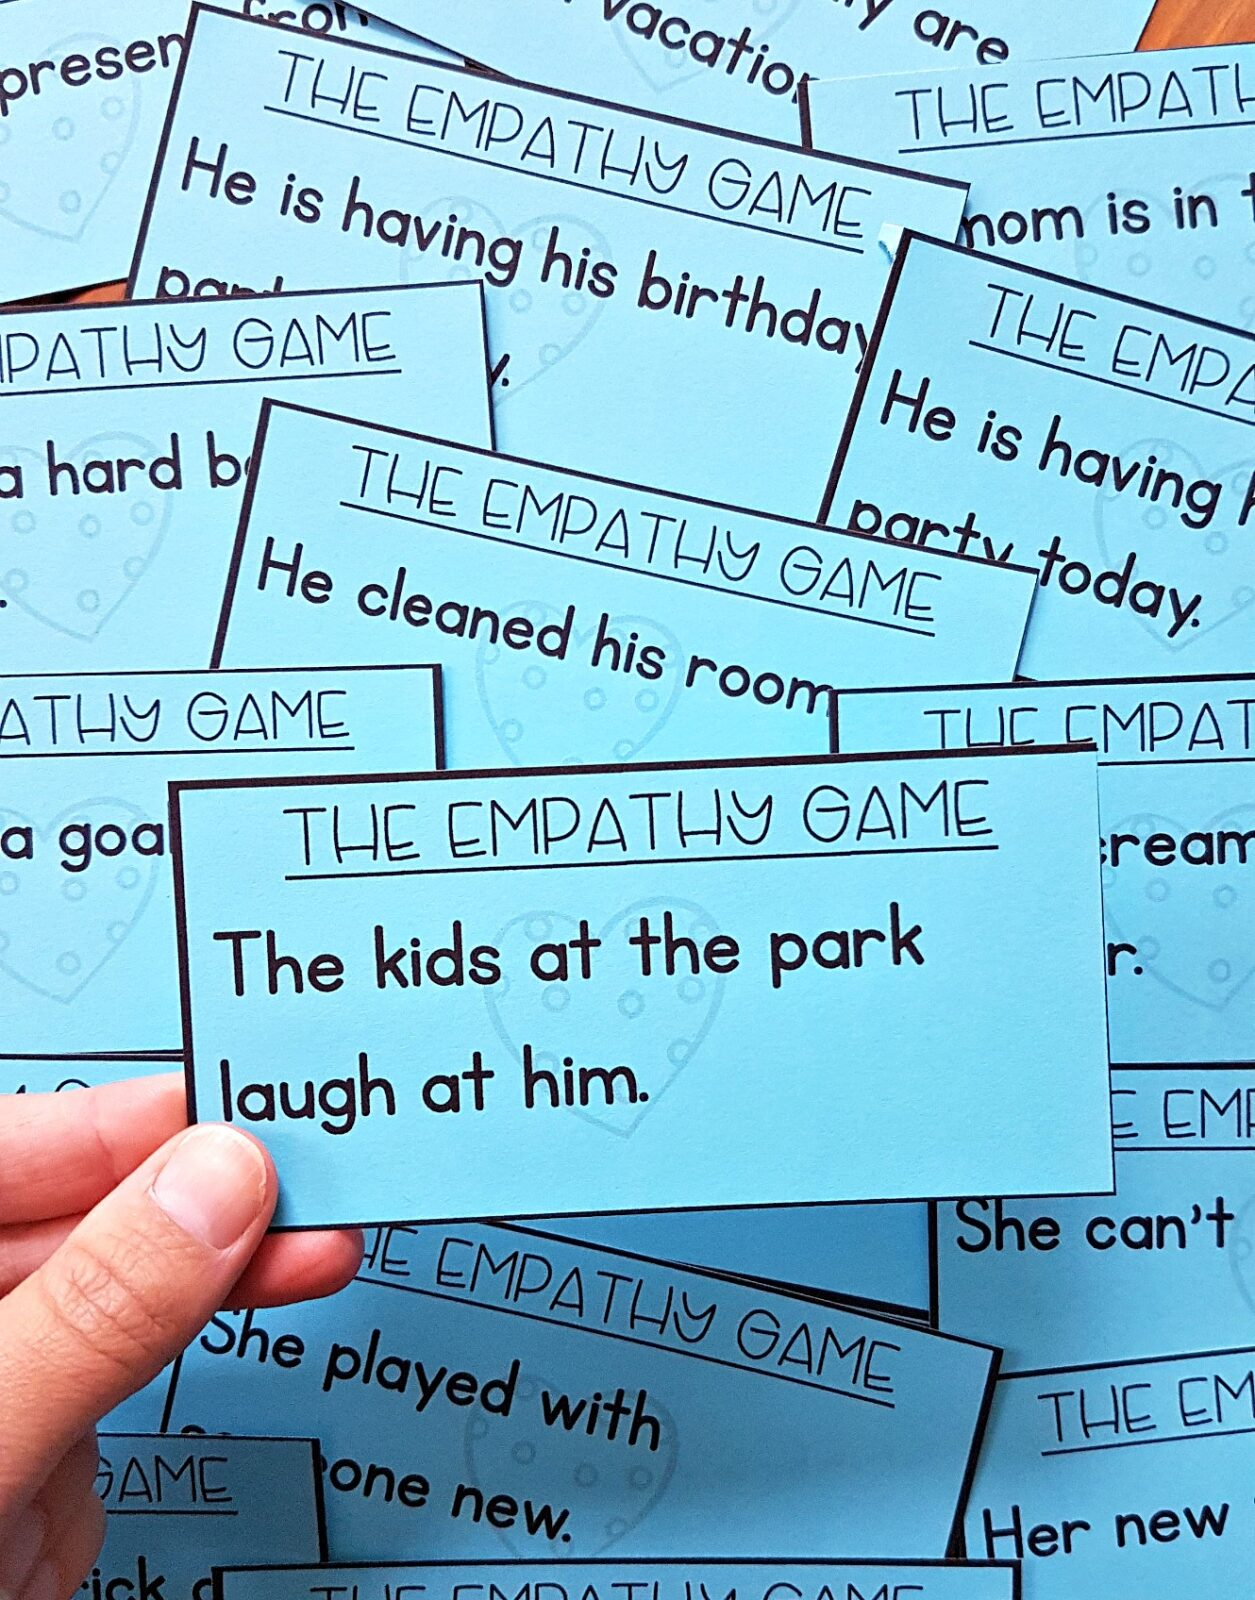 the empathy game for role playing with scenarios on cards for kids to relate to